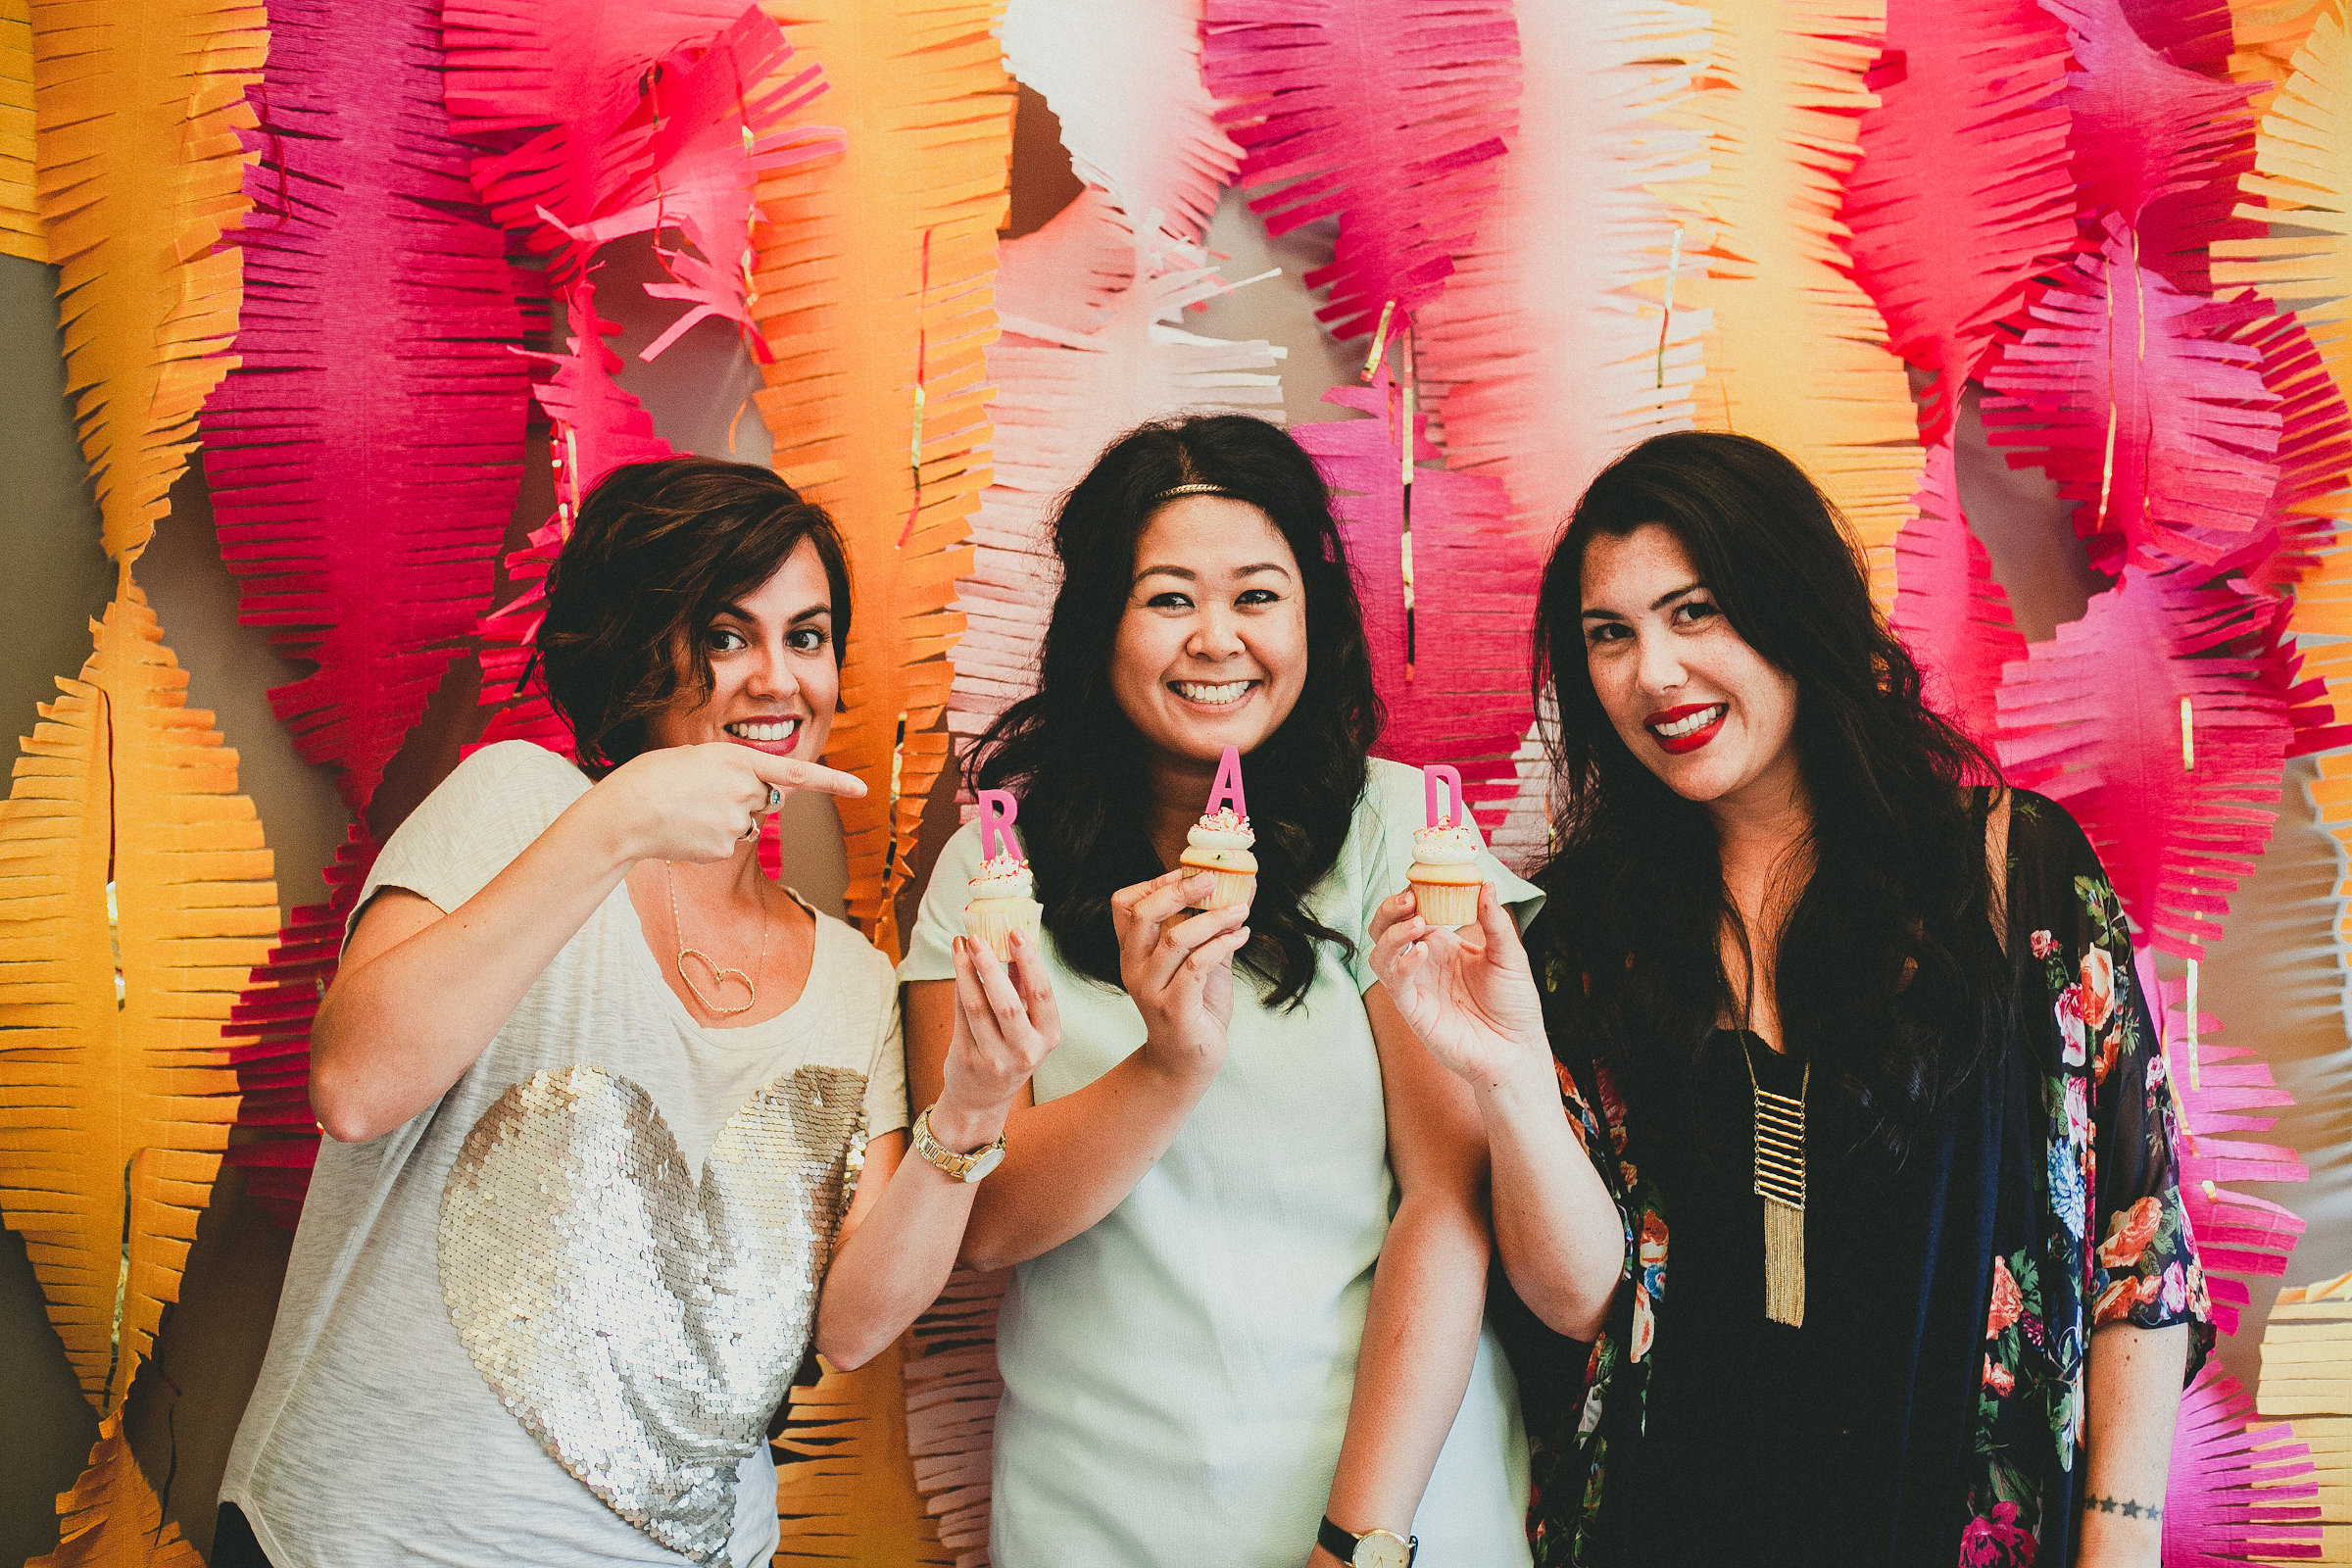 Nichole of Nic Roc Designs, Melissa of Melissa Biador Photography, Stevi of Hey There, Cupcake!